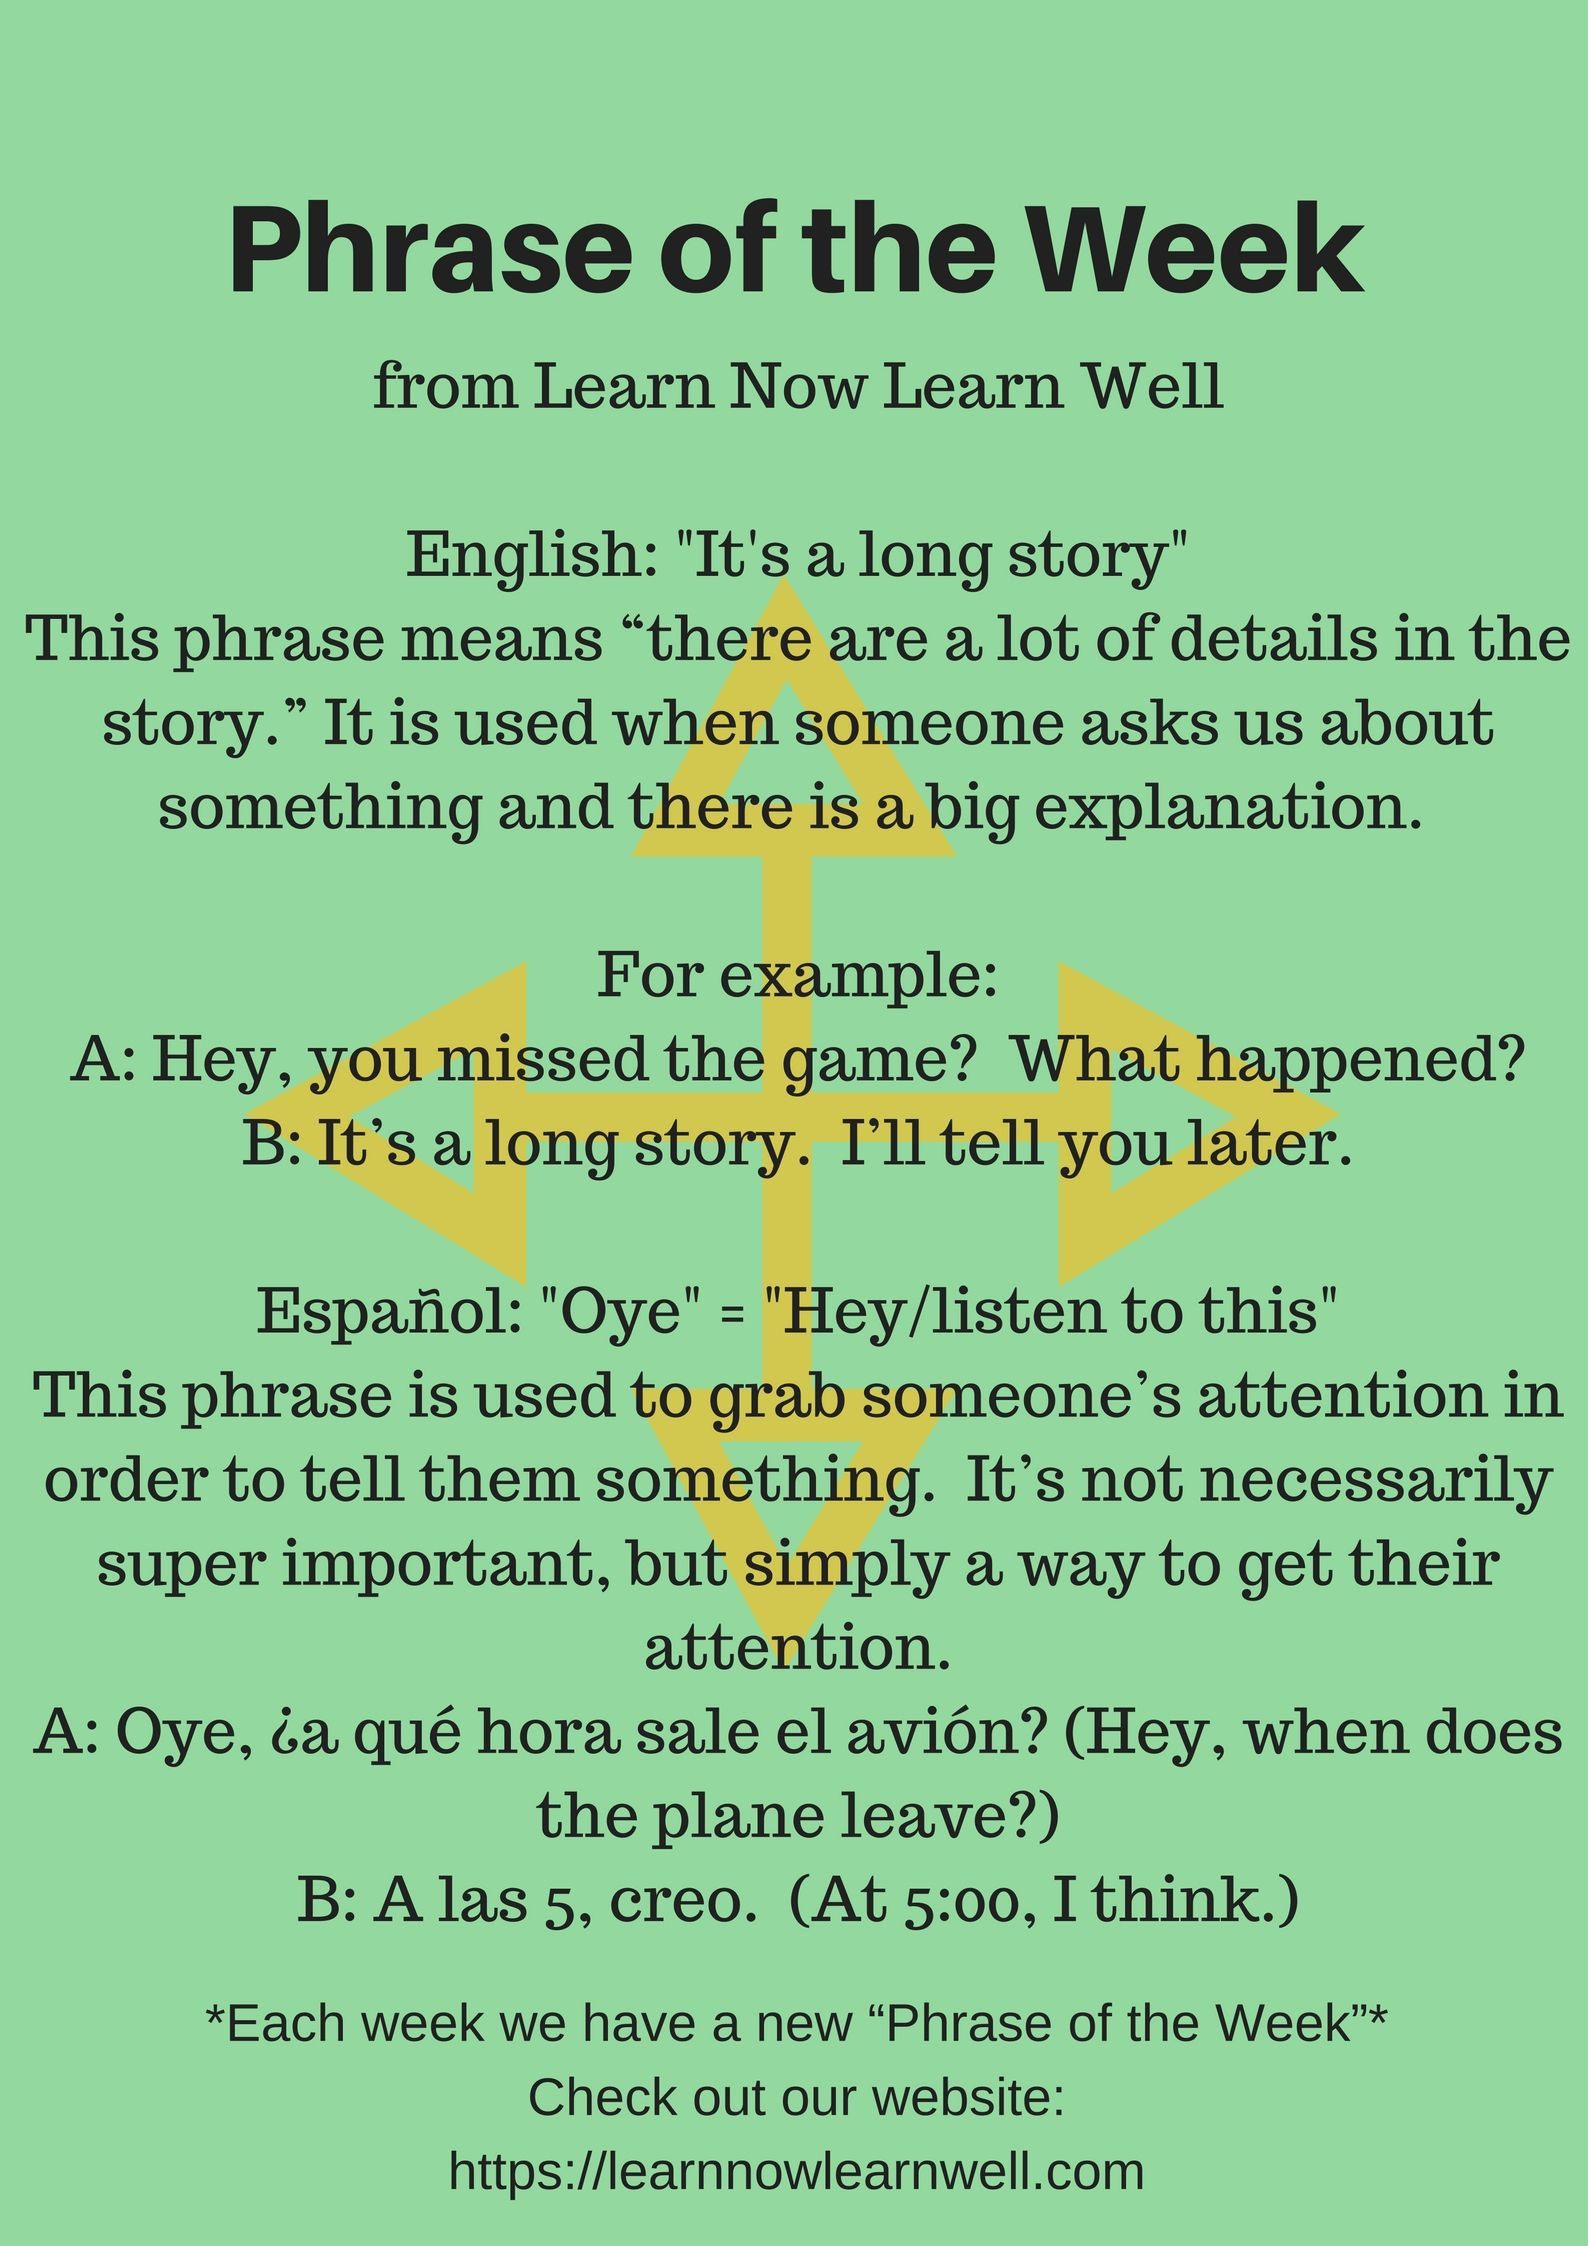 Learn Common Phrases In English And Spanish Each Week For Free